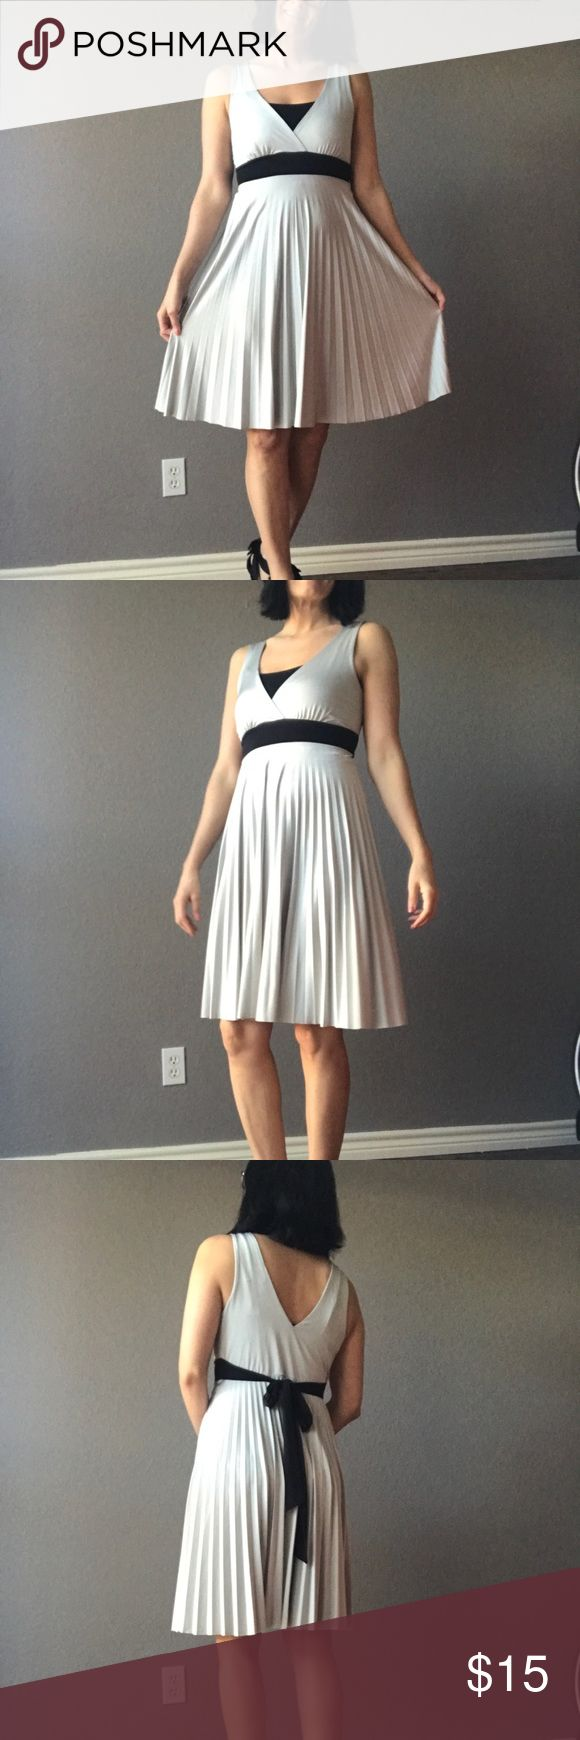 Forever21 silver dress This dress is classy- it looks great with strappy black heels for a night out! Model is 5'6 - 130lbs. The dress is a size medium. There is a small snag in the front accordion section but it's not noticeable due to the accordion effect. Forever 21 Dresses Midi